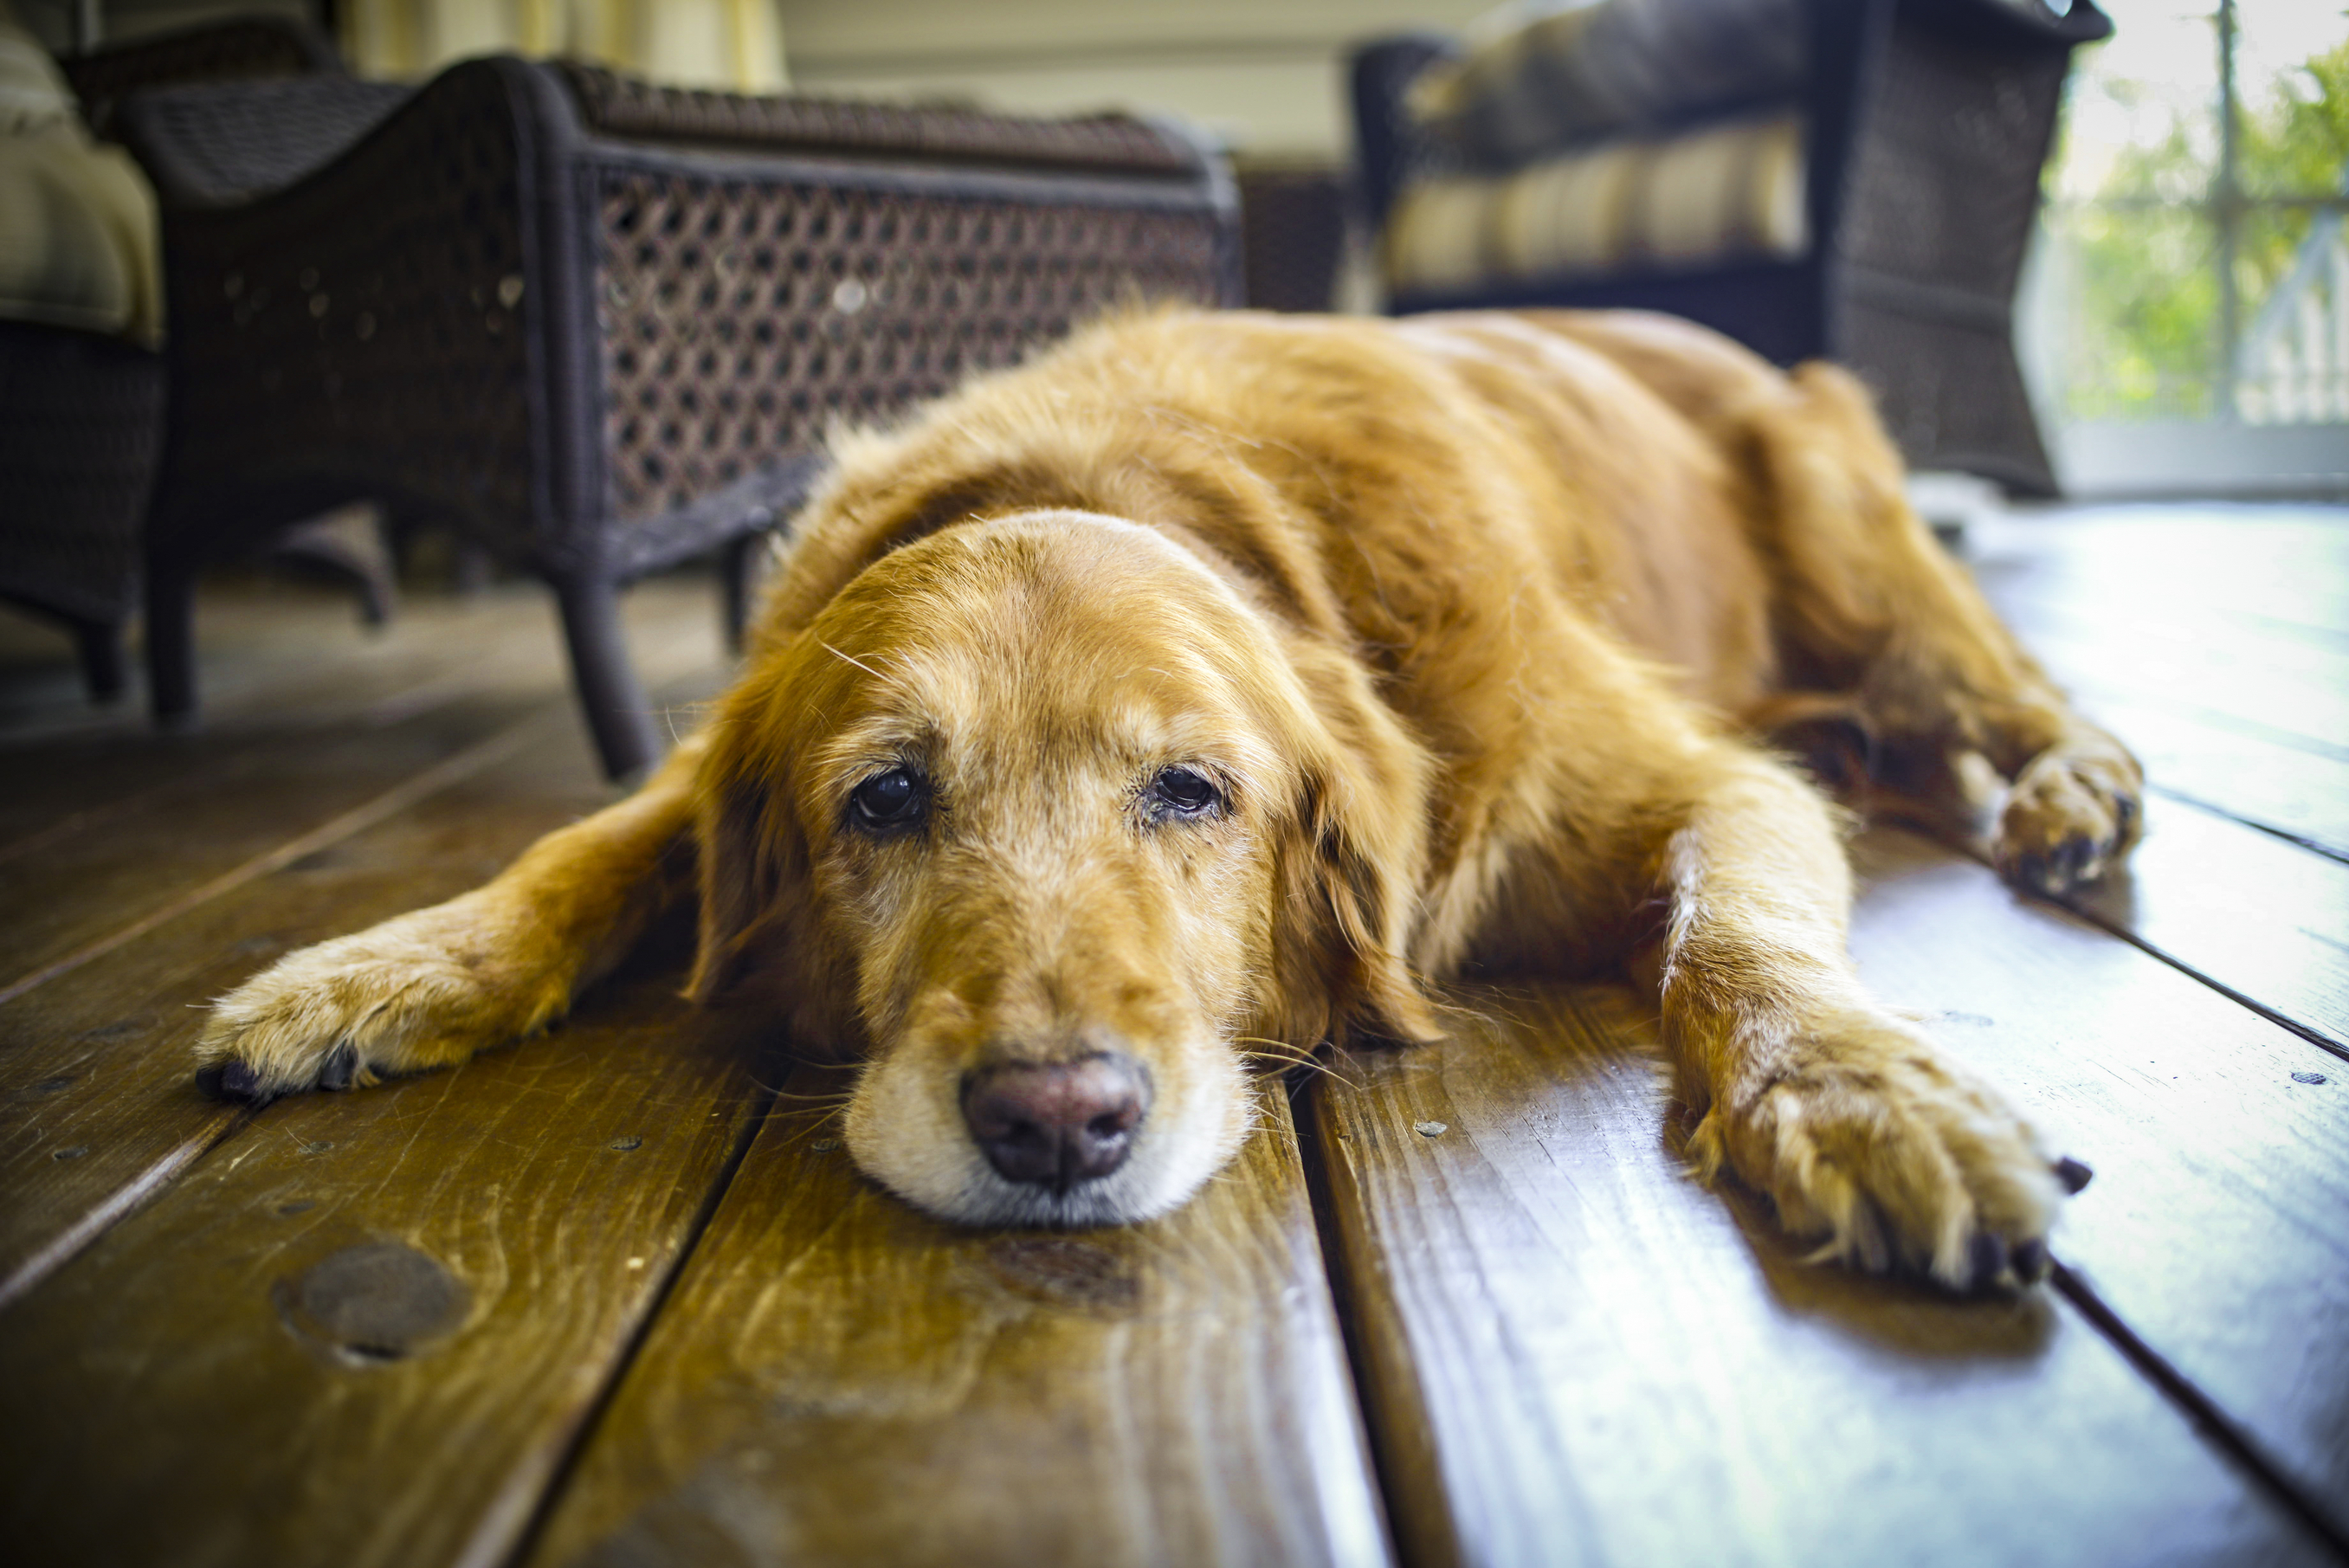 New York farm acts as retirement home for elderly dogs